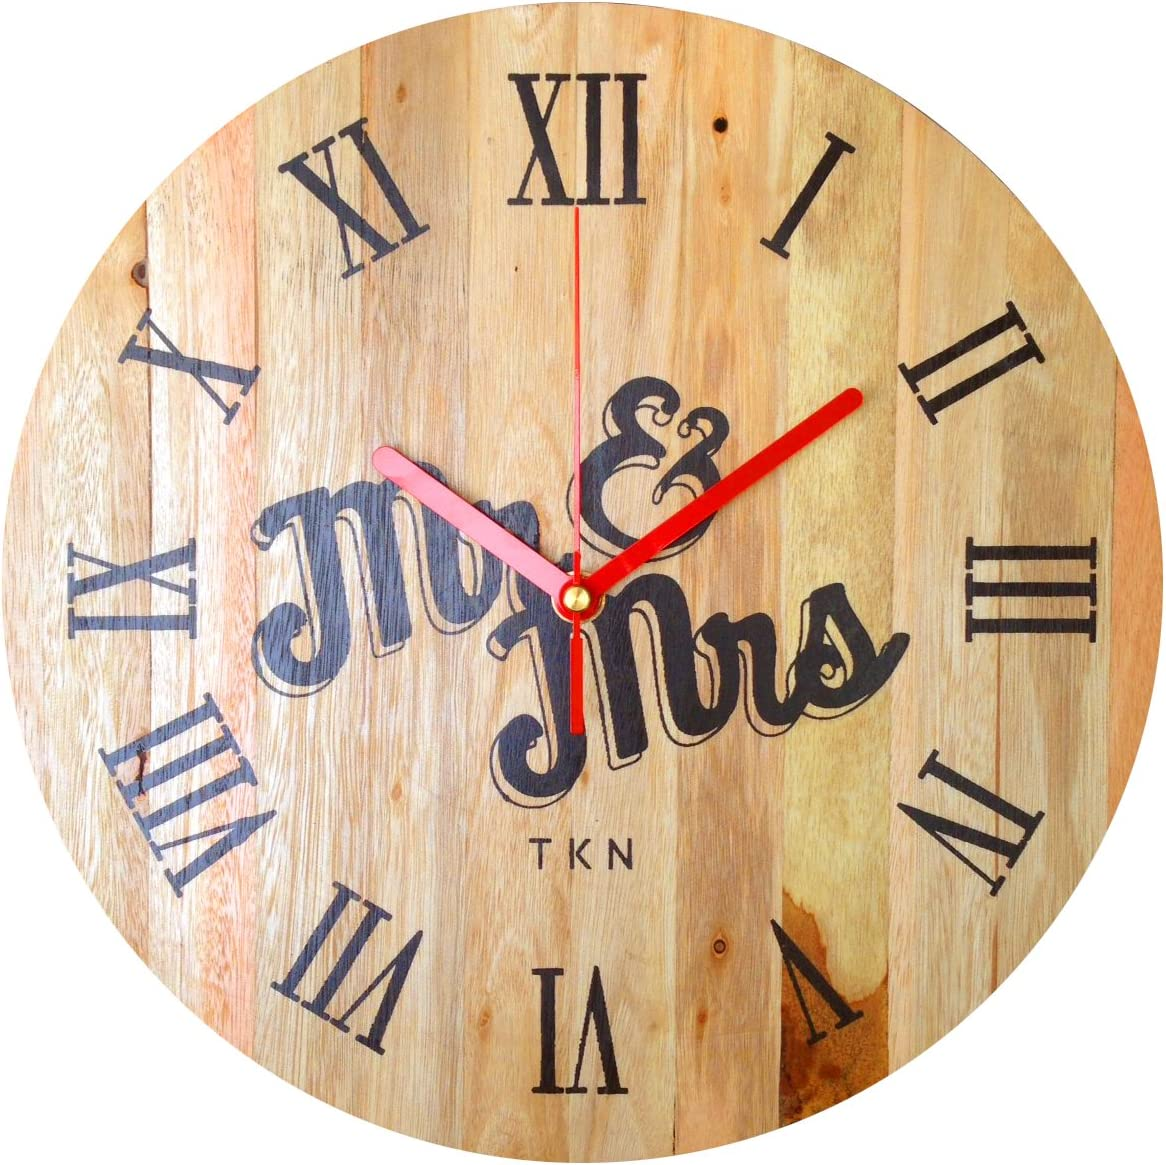 TKN Products - Indoor Handmade Wall Clock Wood pallets 12 inch Mrmrs Roman Numeral for Living, Kitchen, Laundry Room